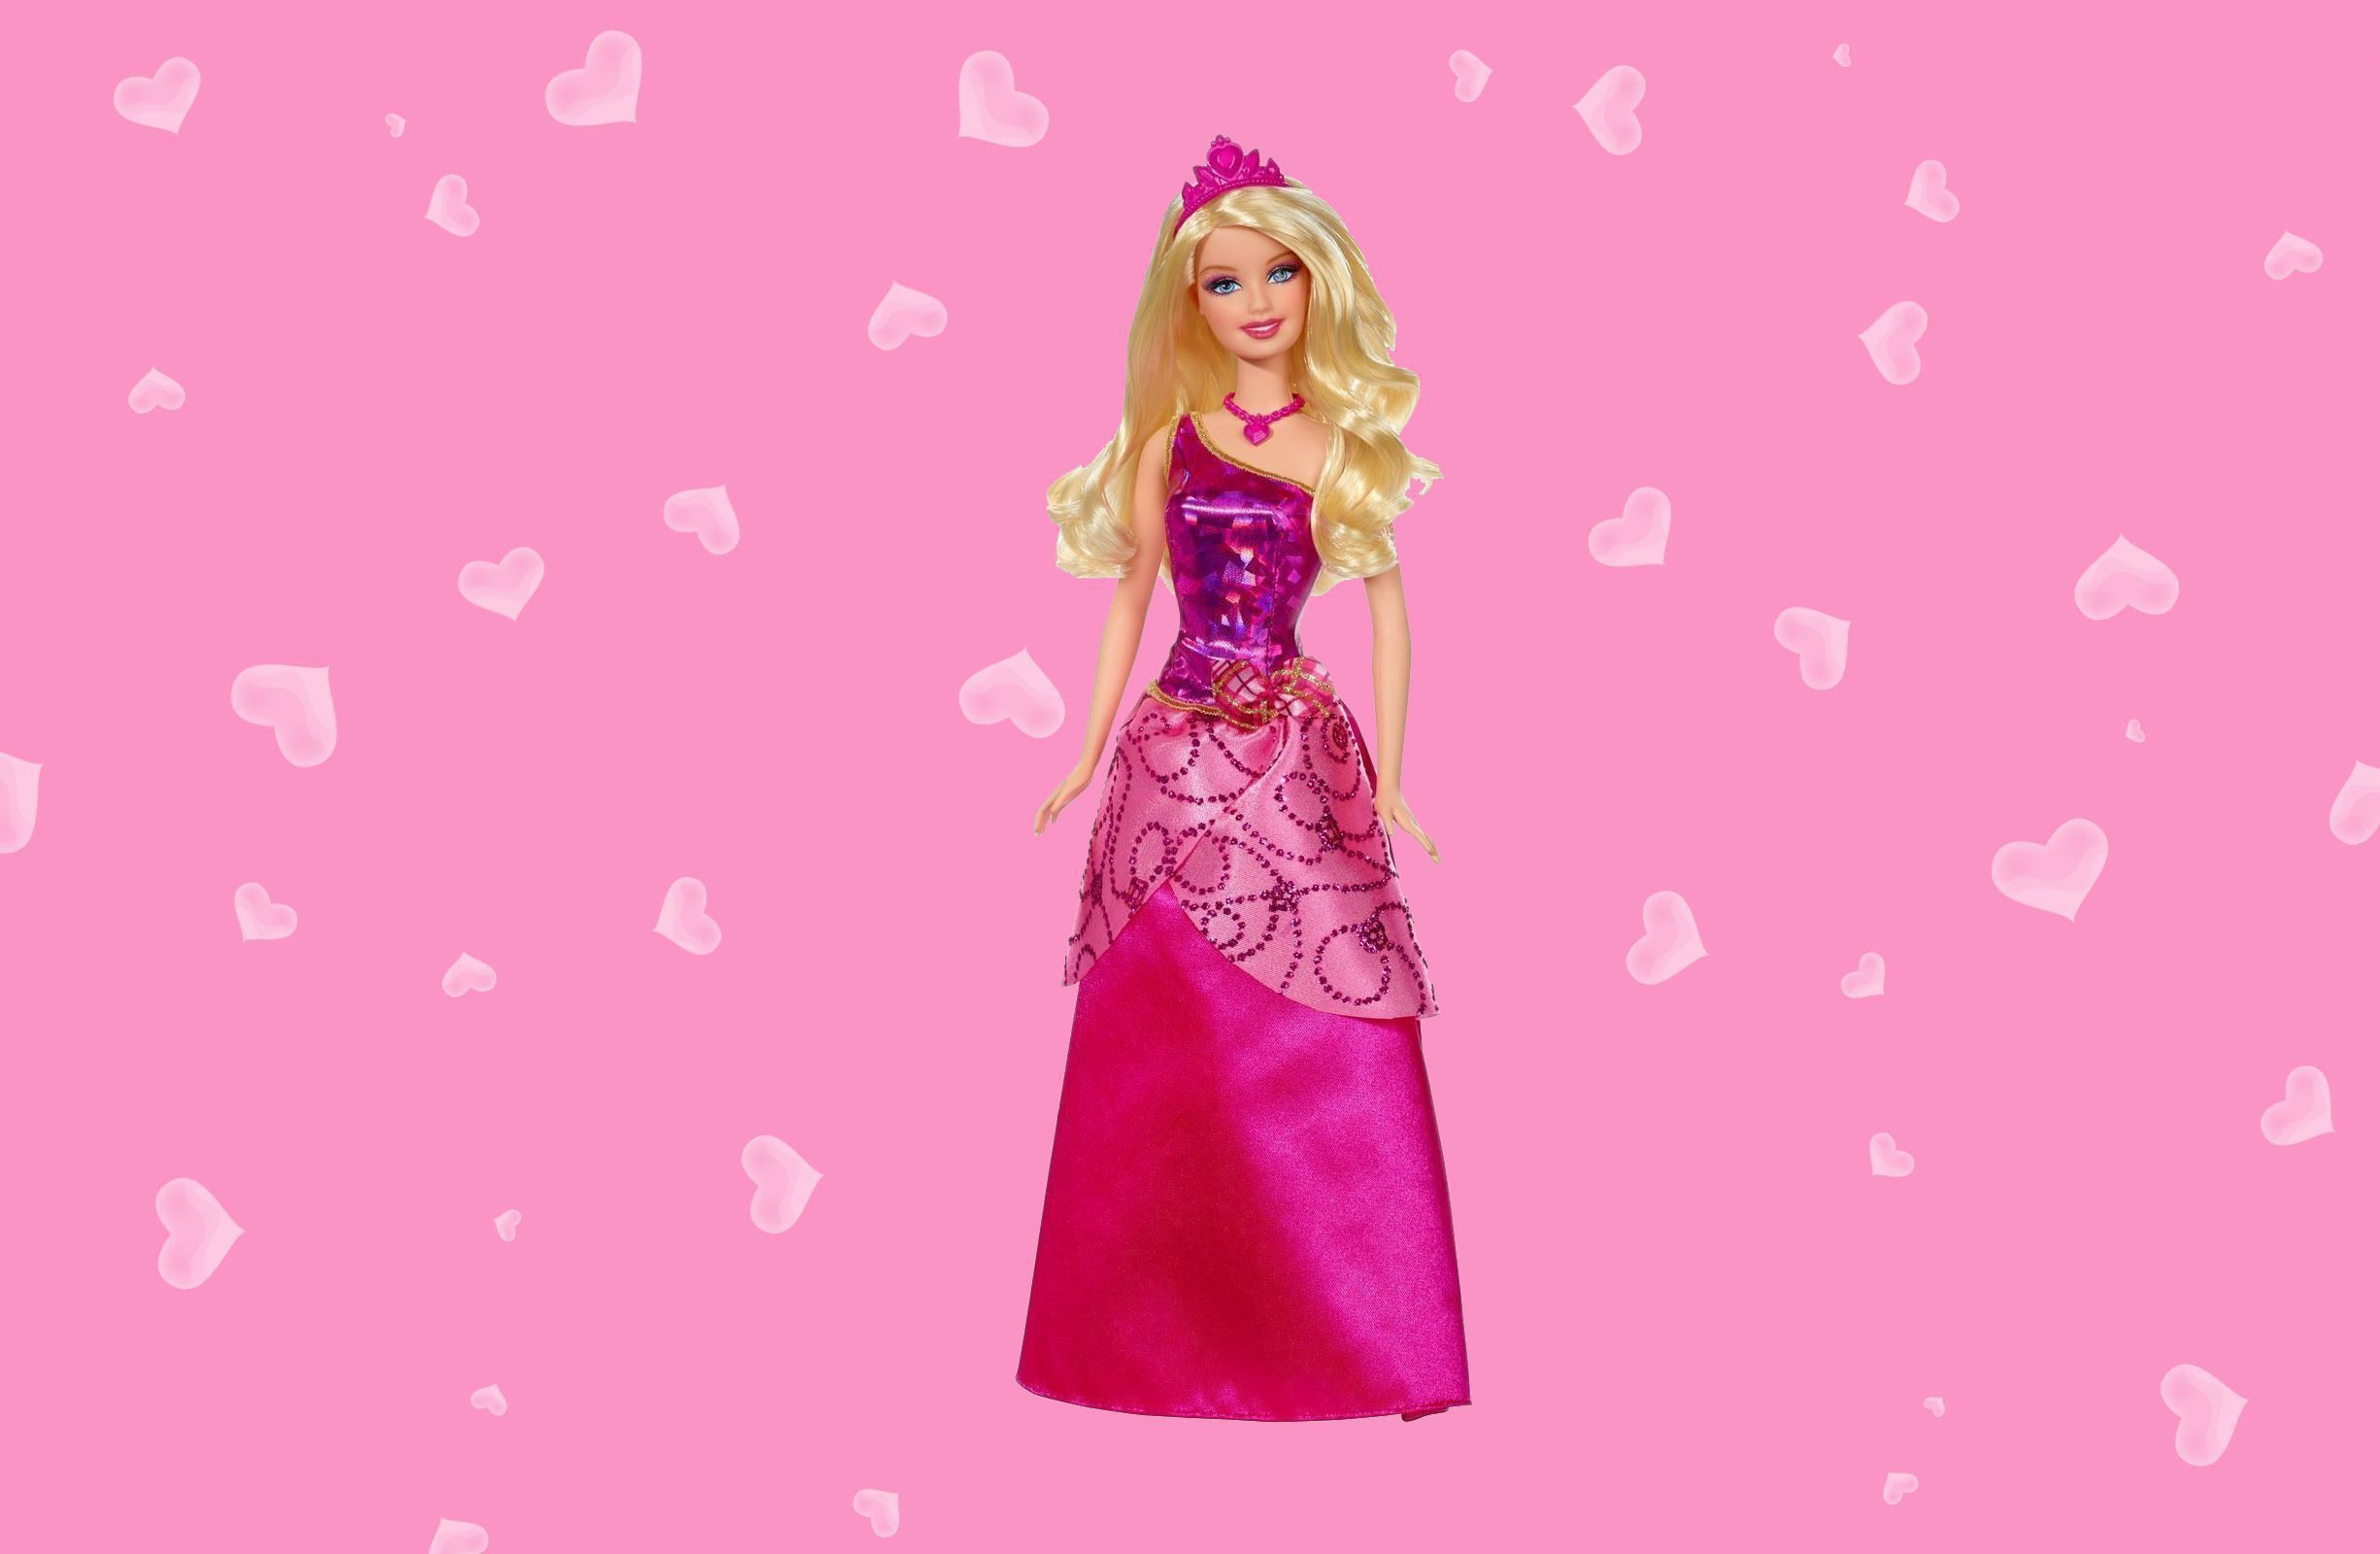 Barbie HD Wallpaper